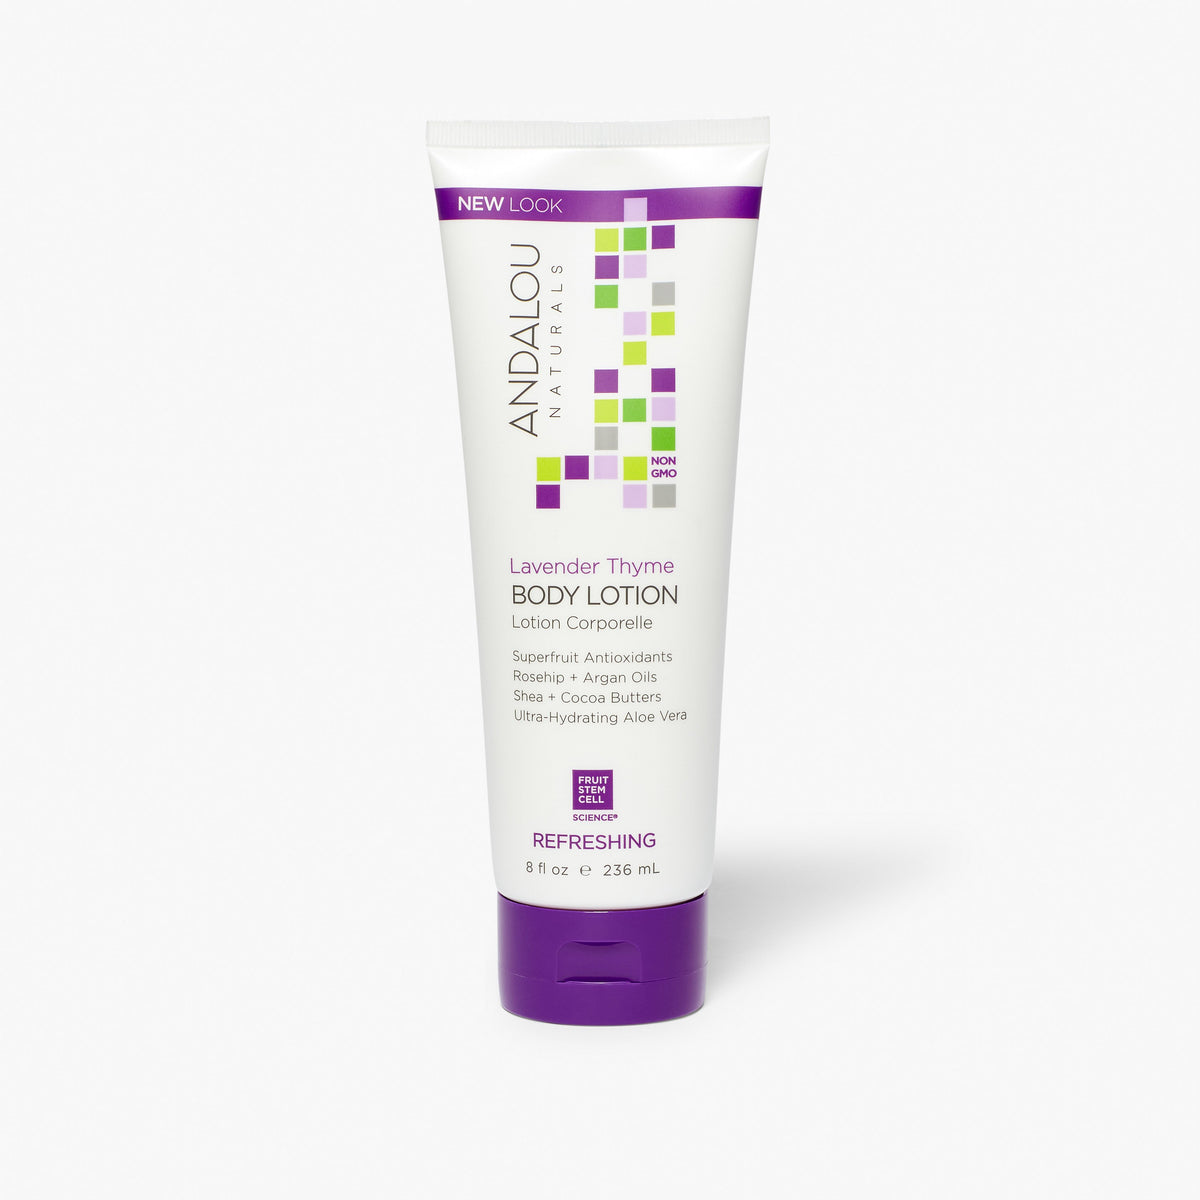 Lavender Thyme Refreshing Body Lotion